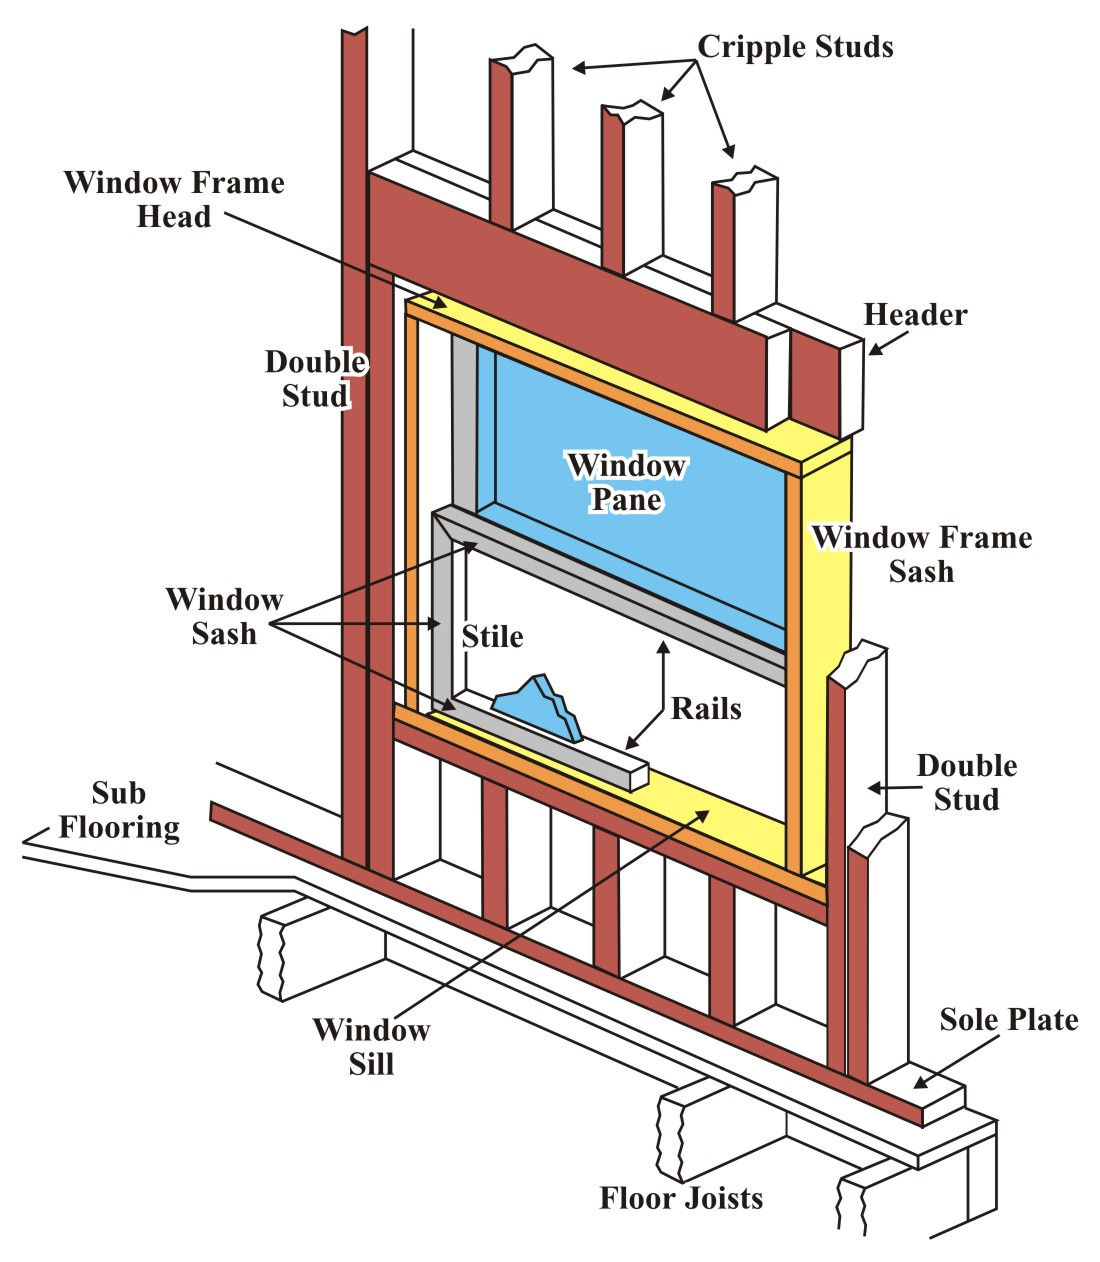 Parts of a Window http://www.ehow.com/about_5240738_description-window-parts.html